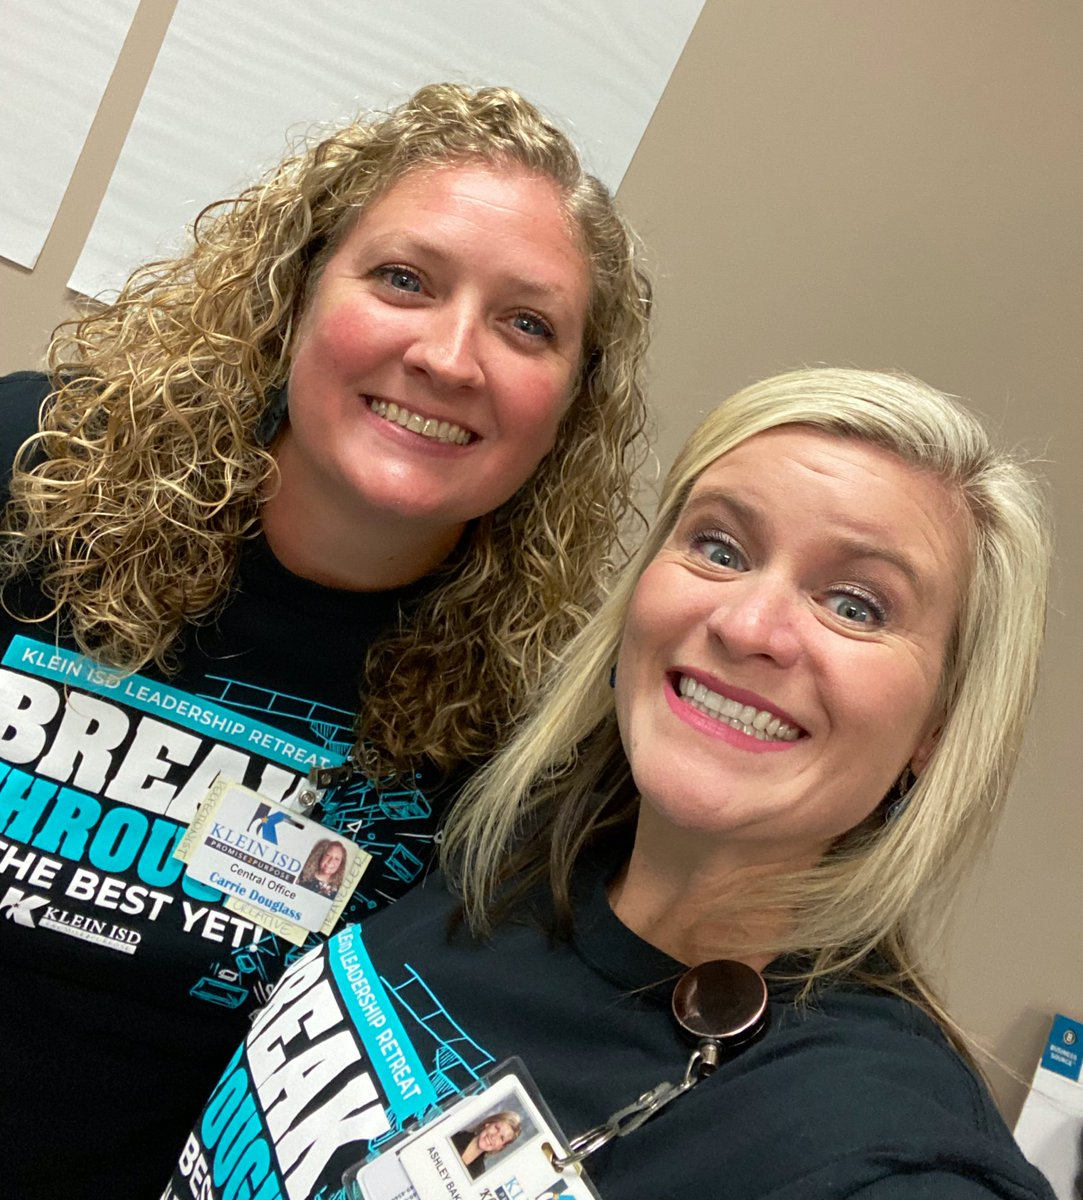 Spent the day hanging with my BFF and talking Personalized Learning with admin and district leaders. Does it get any better than that?? @CarrieD_KISD #loveher #sheknowsherstuff #andputsupwithme #partnerincrime https://t.co/pvdov0YOdc